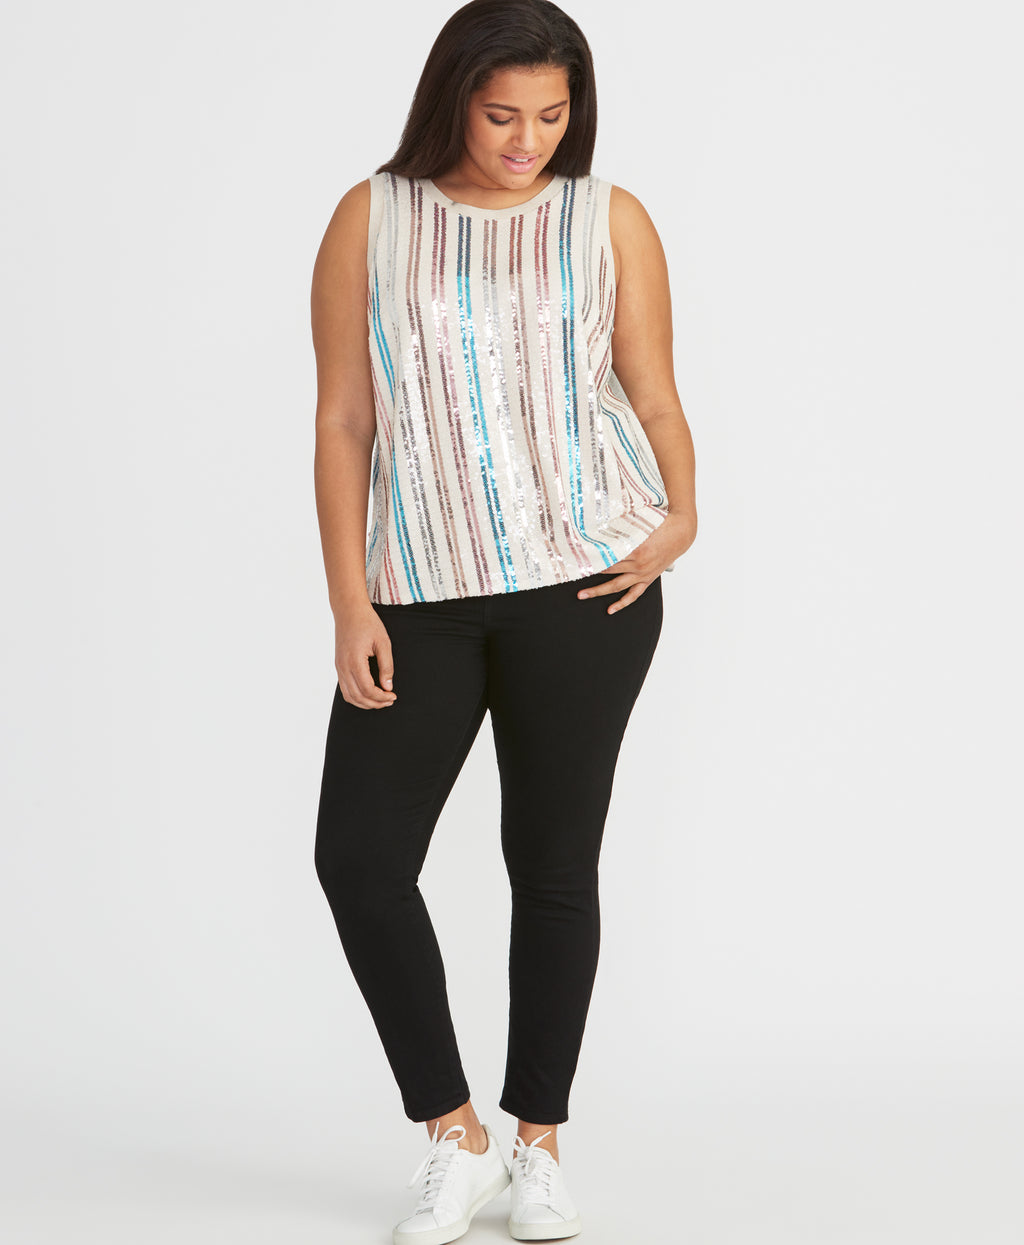 ADDIE SEQUIN TOP | ADDIE SEQUIN TOP